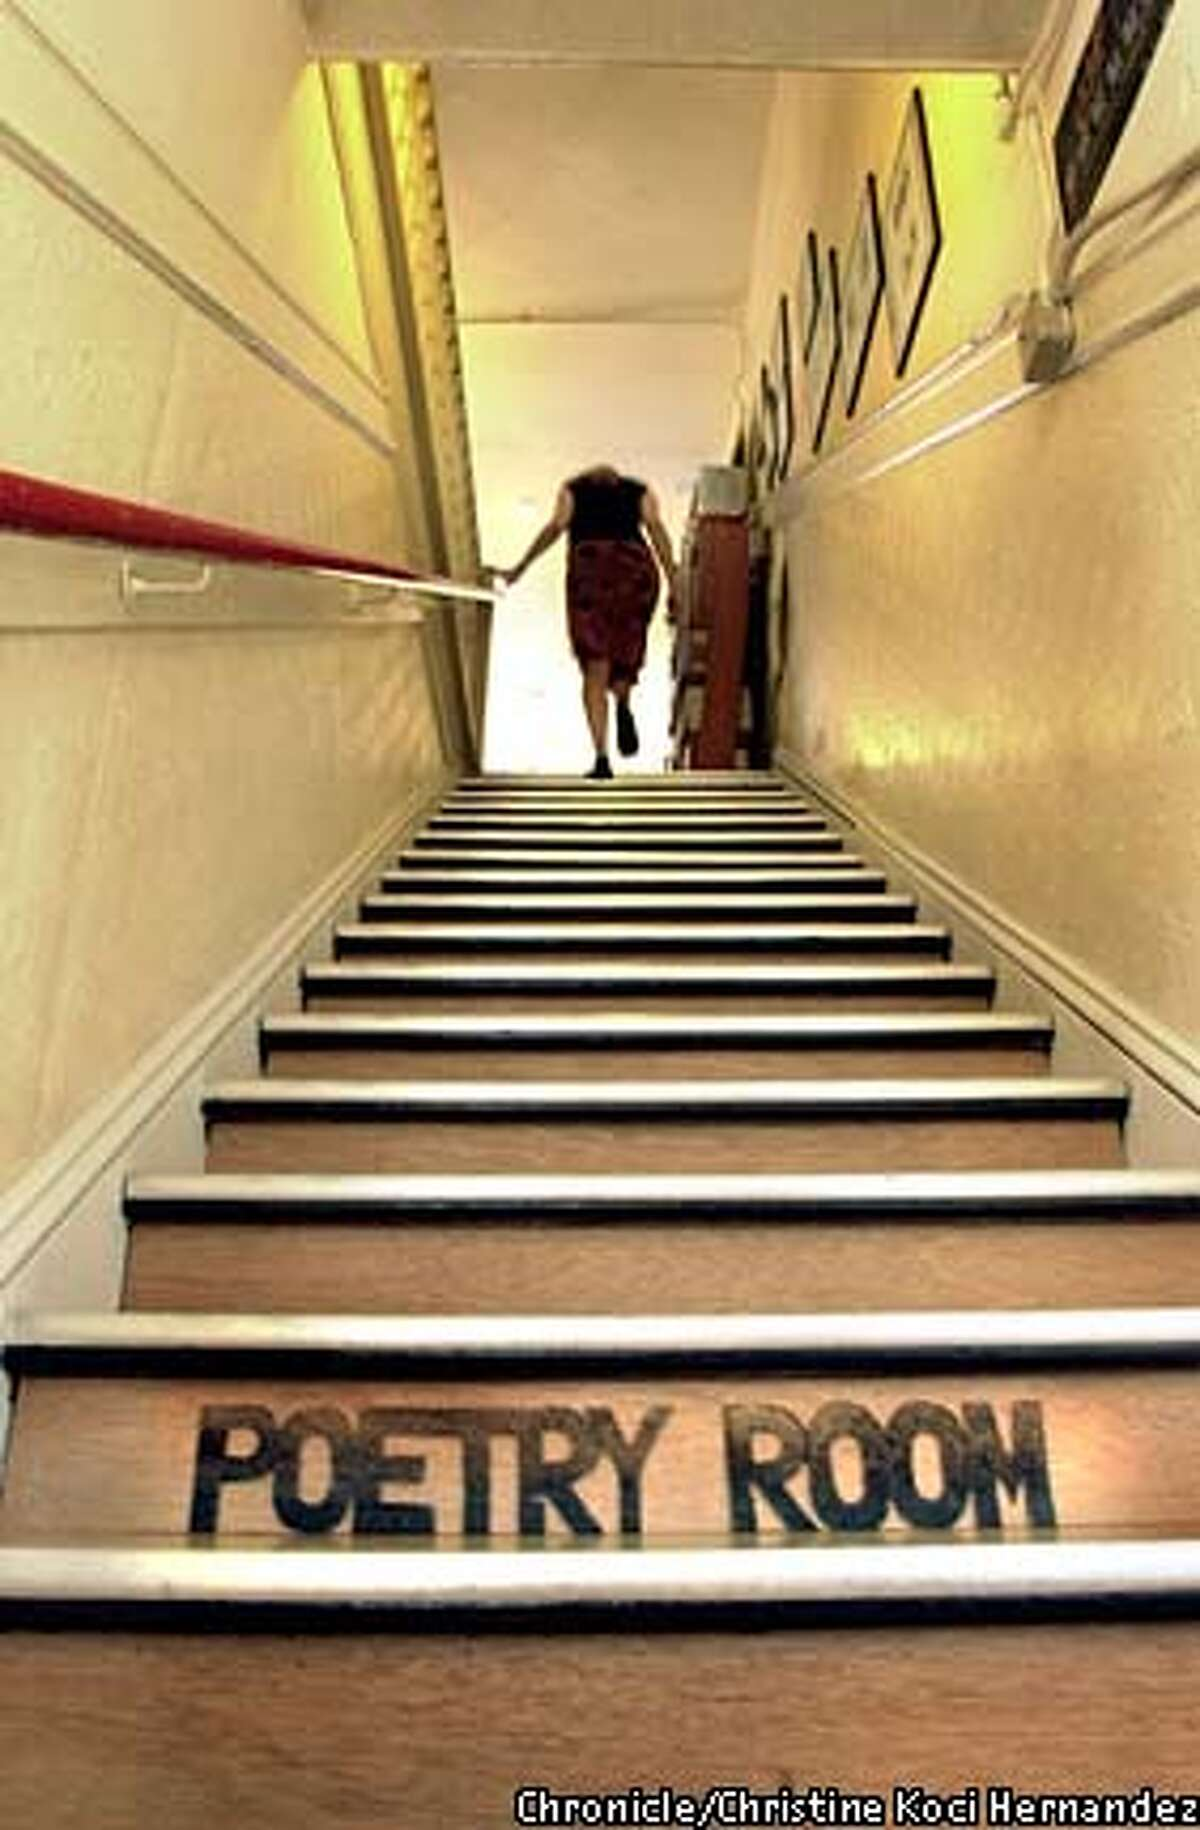 Stairs at the Columbus Avenue store lead to the new Poetry Room. Chronicle photo by Christina Koci Hernandez